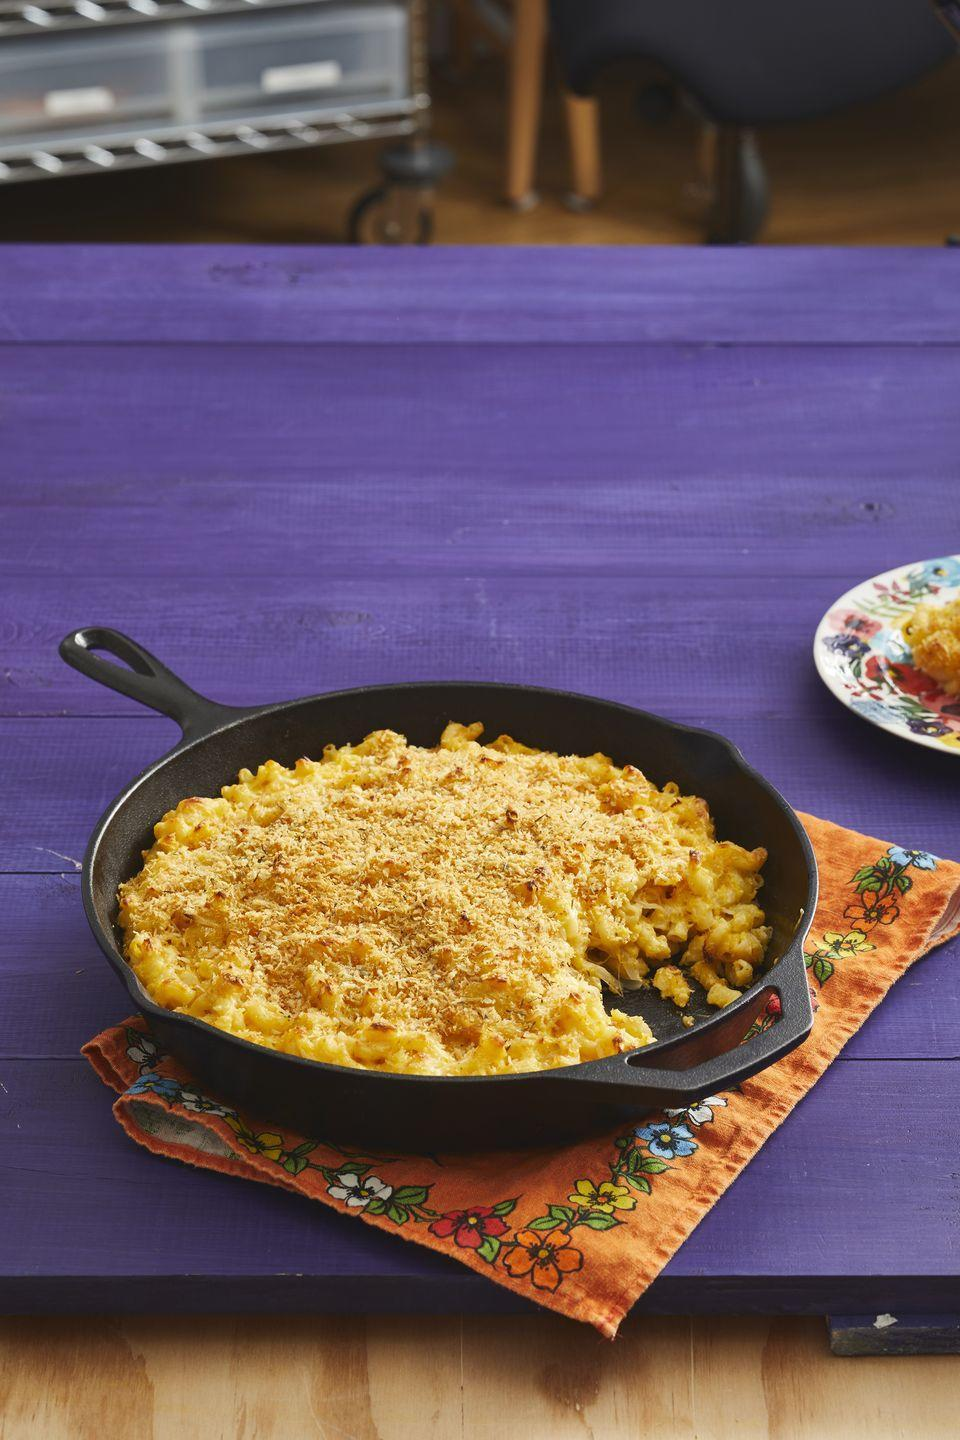 "<p>You might want to make two batches of this creamy, fall-inspired mac and cheese. It'll likely be the first Thanksgiving side dish on your table to completely disappear!</p><p><strong><a href=""https://www.thepioneerwoman.com/food-cooking/recipes/a32947627/butternut-squash-mac-and-cheese-recipe/"" rel=""nofollow noopener"" target=""_blank"" data-ylk=""slk:Get the recipe."" class=""link rapid-noclick-resp"">Get the recipe.</a></strong></p><p><strong><a class=""link rapid-noclick-resp"" href=""https://go.redirectingat.com?id=74968X1596630&url=https%3A%2F%2Fwww.walmart.com%2Fbrowse%2Fhome%2Fcast-iron-cookware%2Fthe-pioneer-woman%2F4044_623679_8140341_1241961%2FYnJhbmQ6VGhlIFBpb25lZXIgV29tYW4ie&sref=https%3A%2F%2Fwww.thepioneerwoman.com%2Ffood-cooking%2Fmeals-menus%2Fg33251890%2Fbest-thanksgiving-sides%2F"" rel=""nofollow noopener"" target=""_blank"" data-ylk=""slk:SHOP CAST-IRON PANS"">SHOP CAST-IRON PANS</a><br></strong></p>"